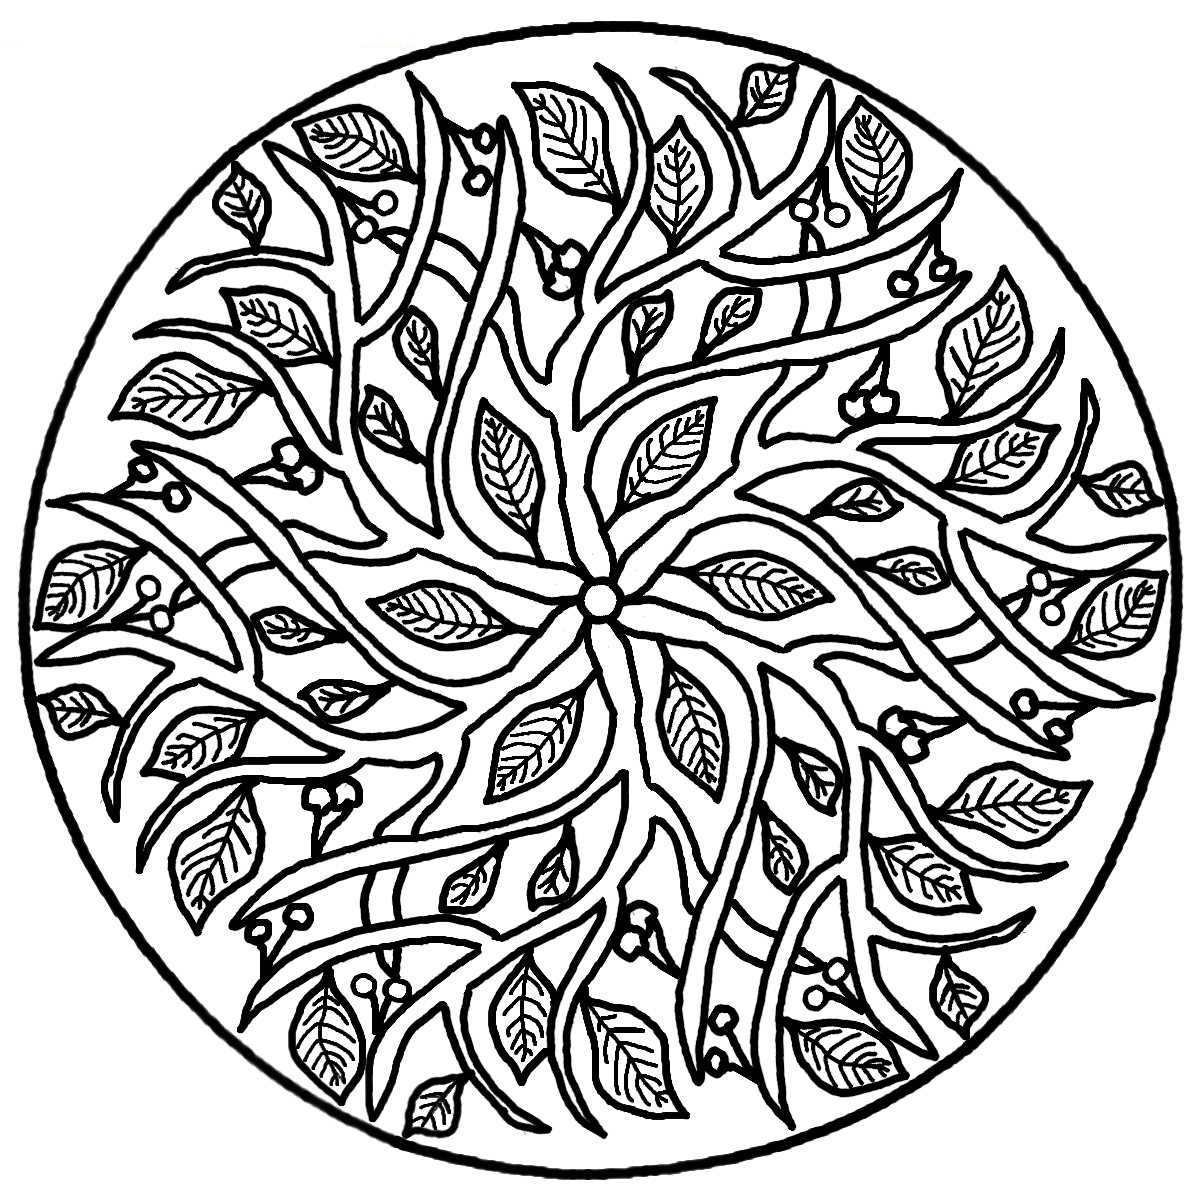 Colouring in pages mandala - Free Mandala Coloring Book